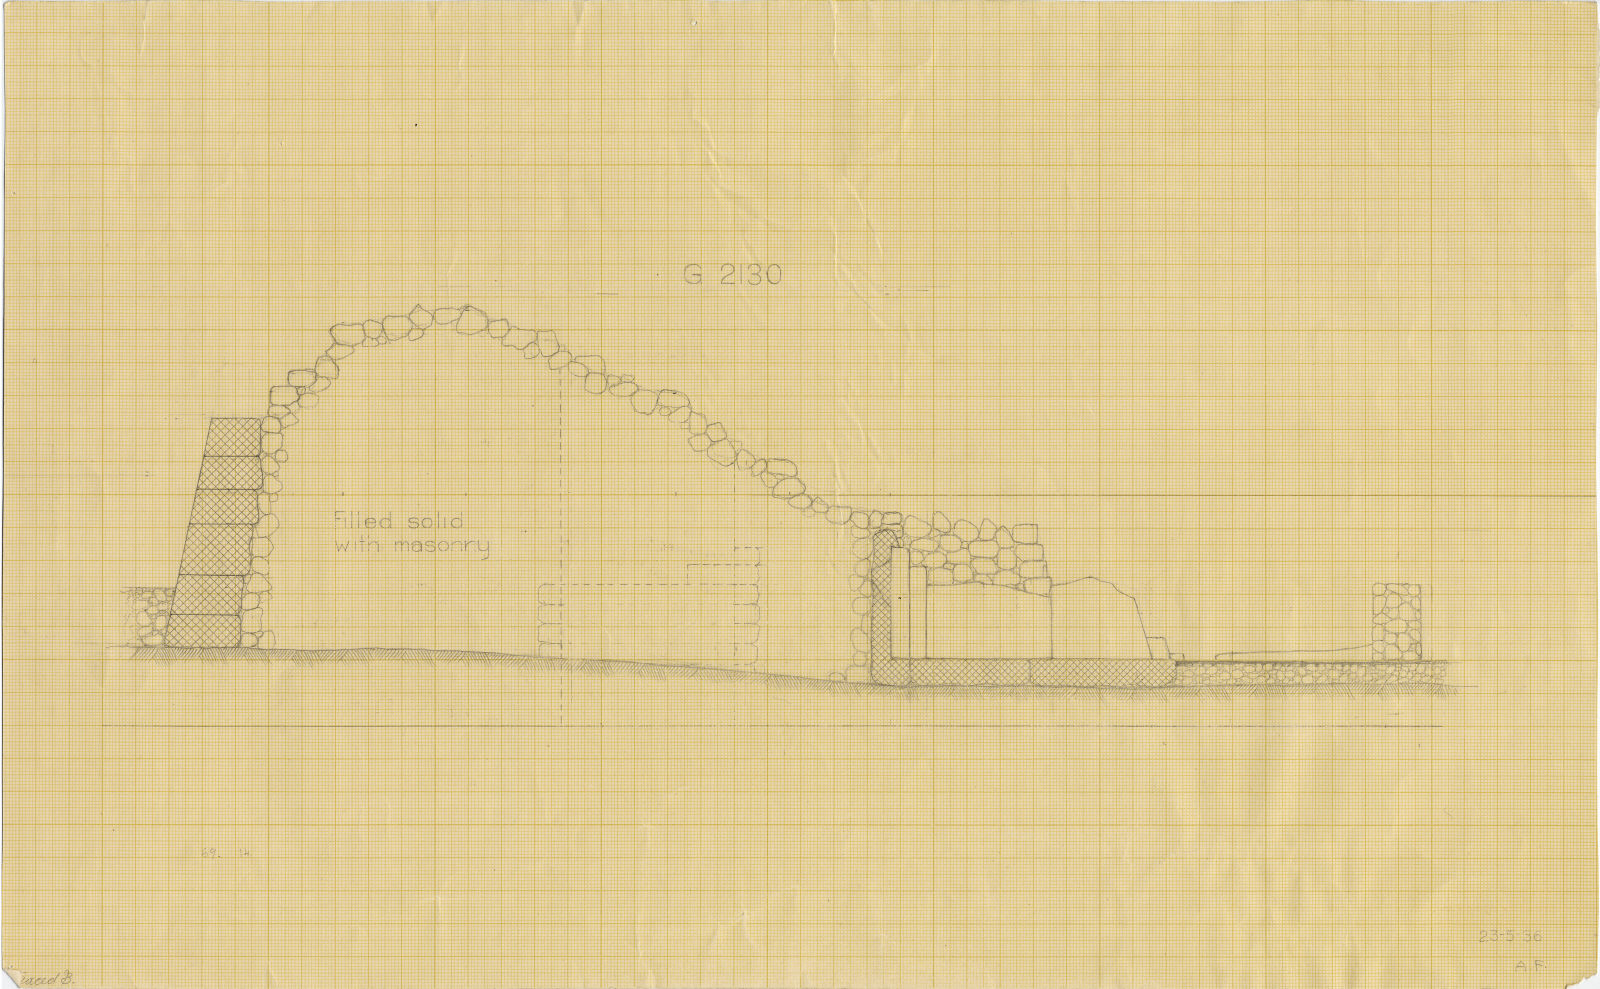 Maps and plans: Section of G 2130